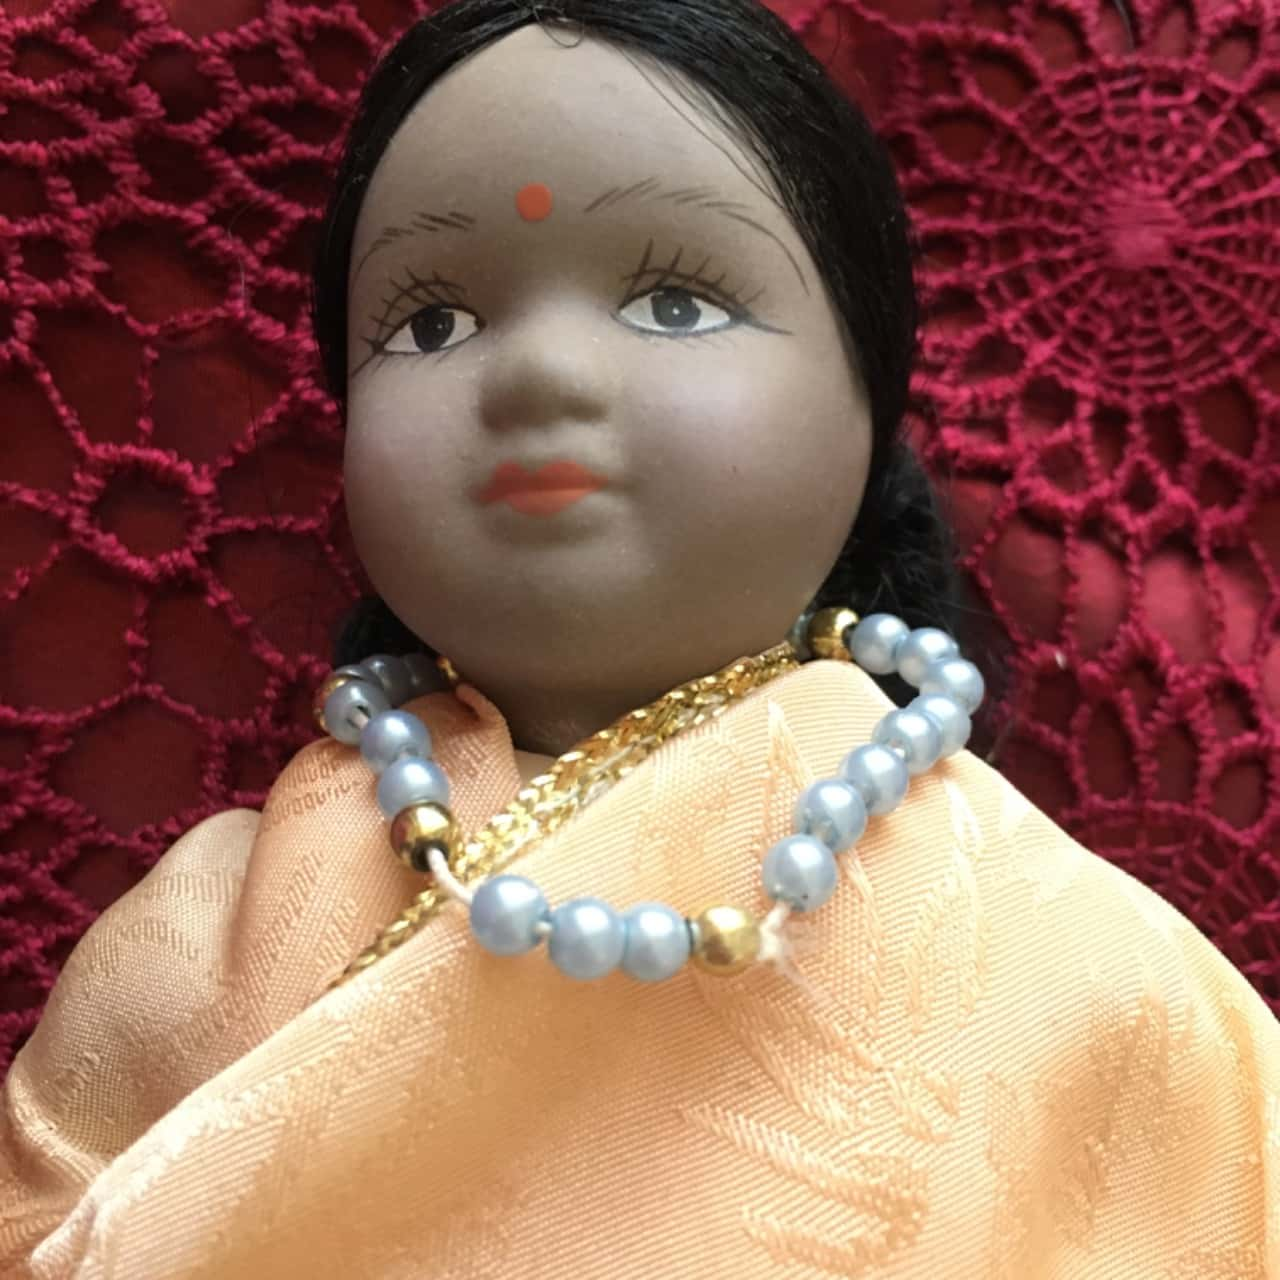 Porcelain Doll in Traditional Costume and Festive Dress from India